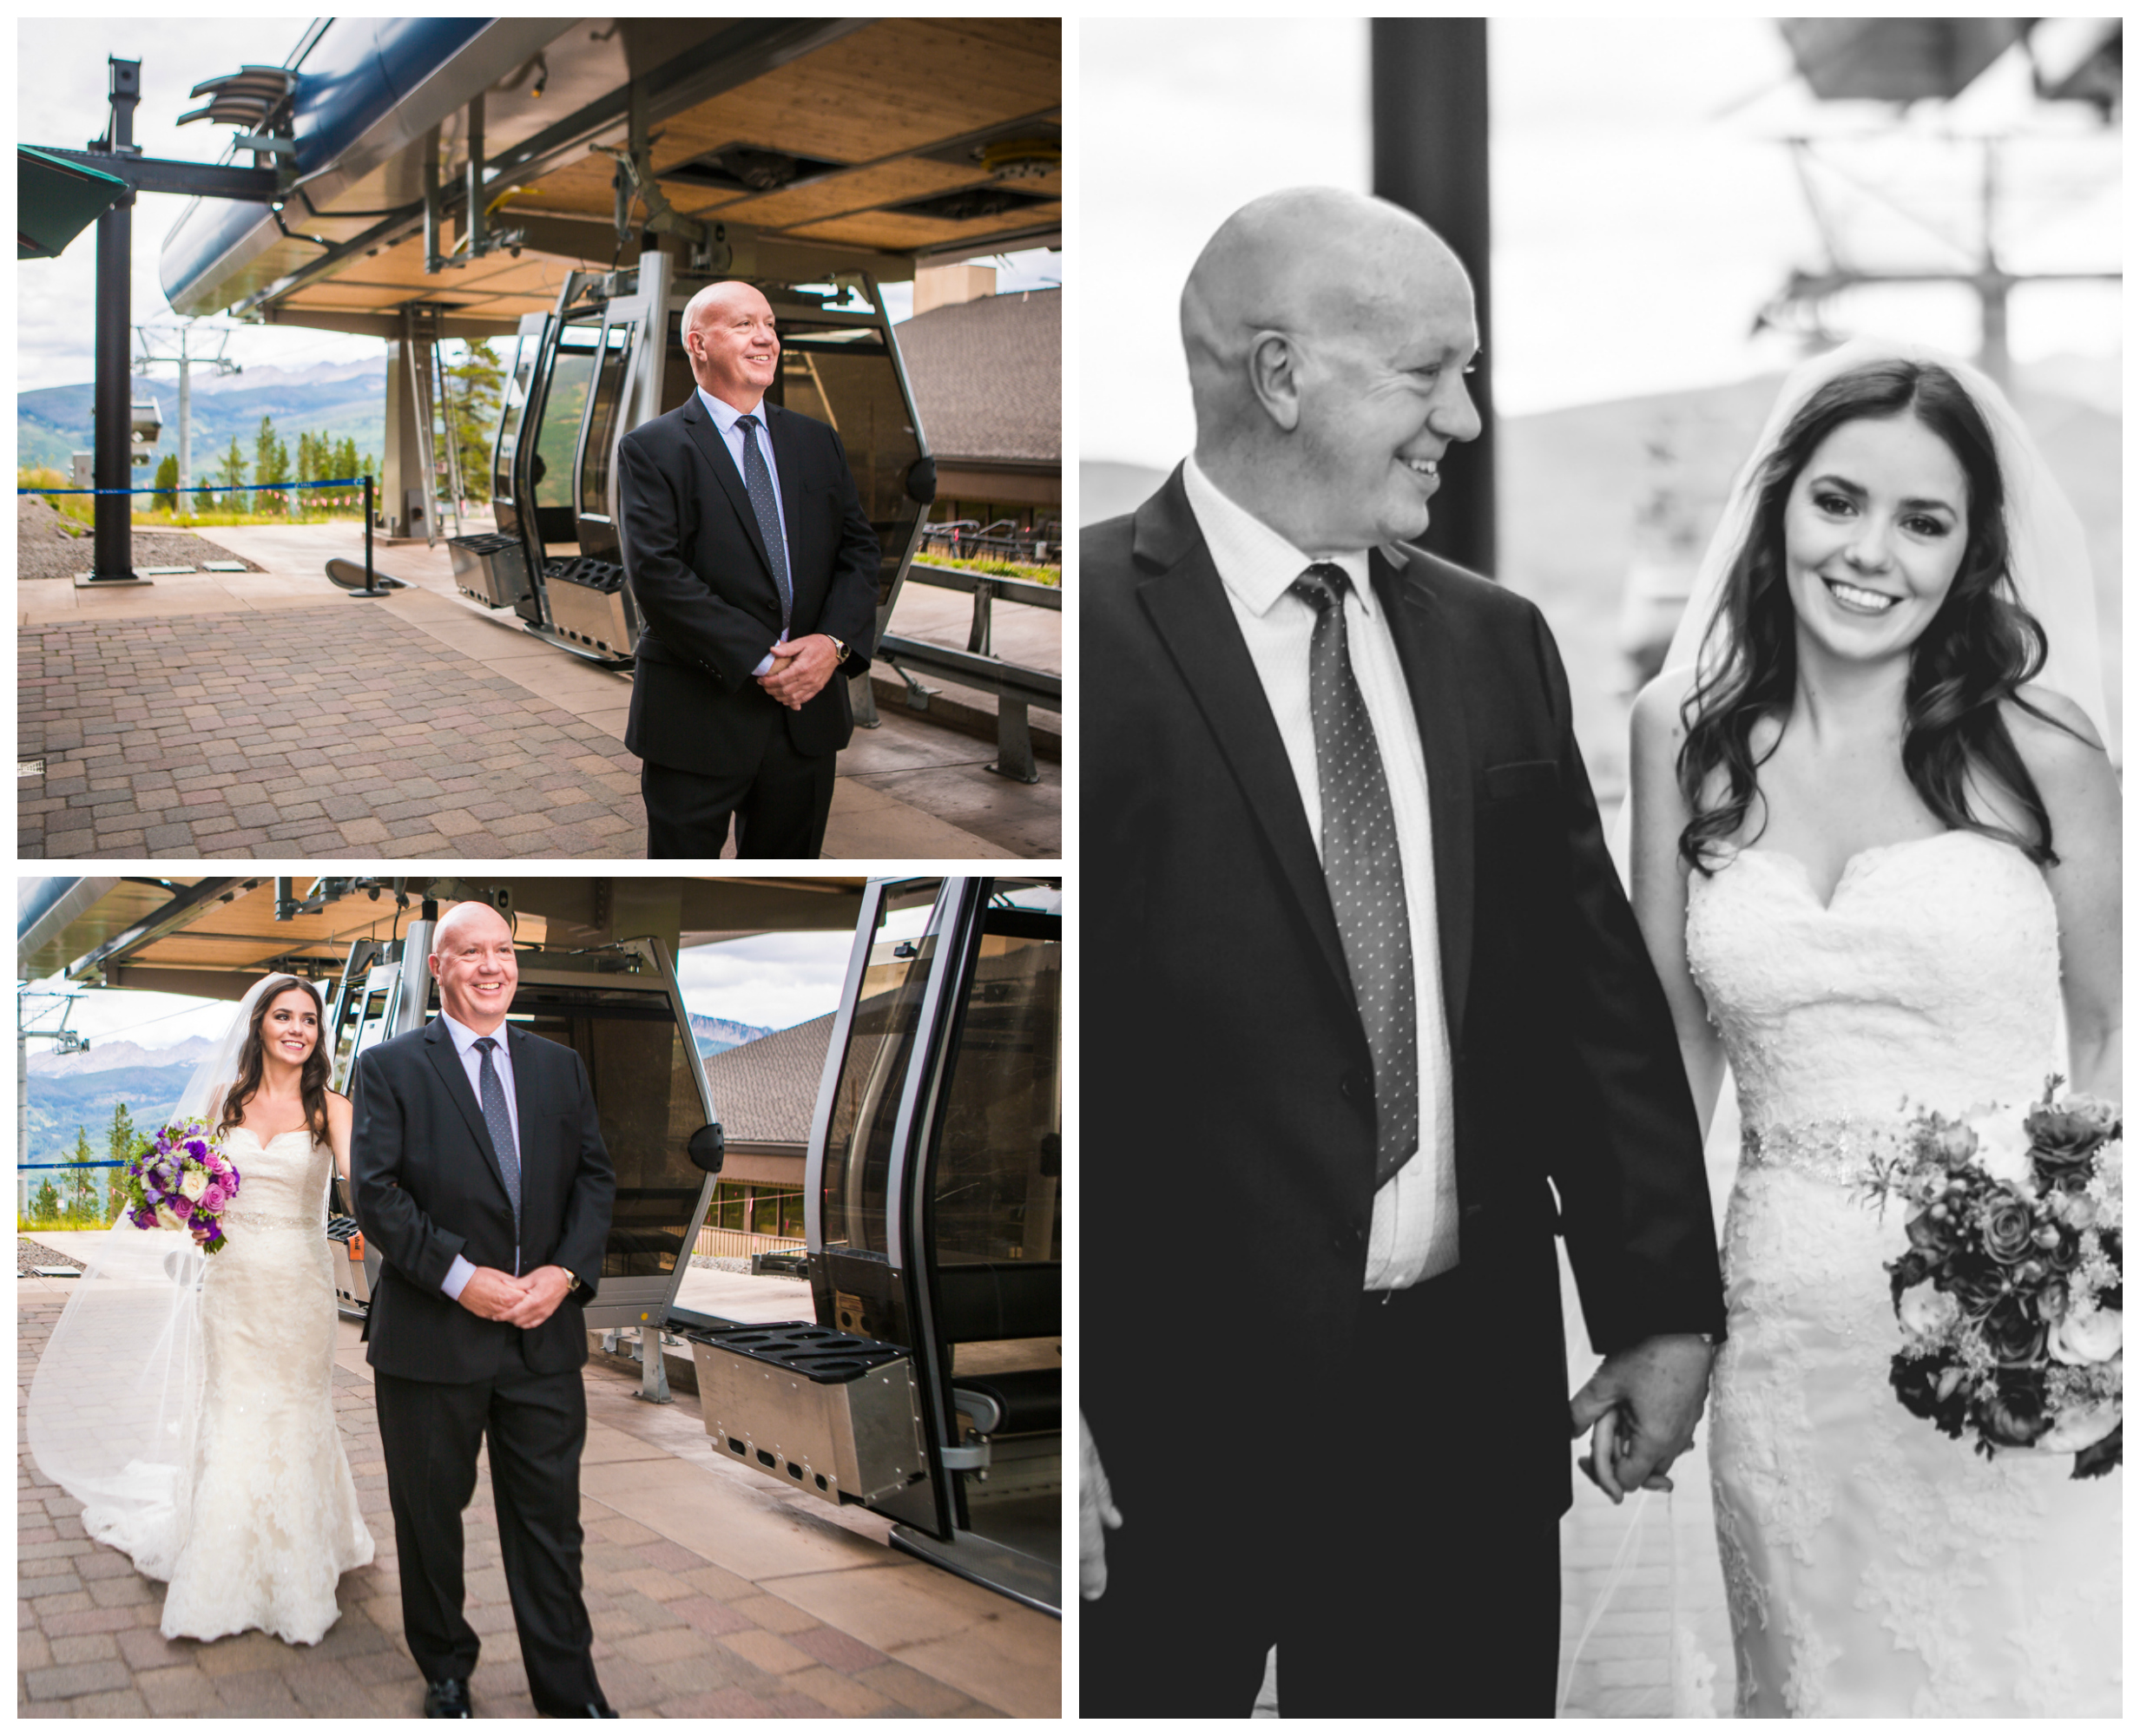 First look with her dad. Vail Colorado Wedding photographed by JMGant Photography.